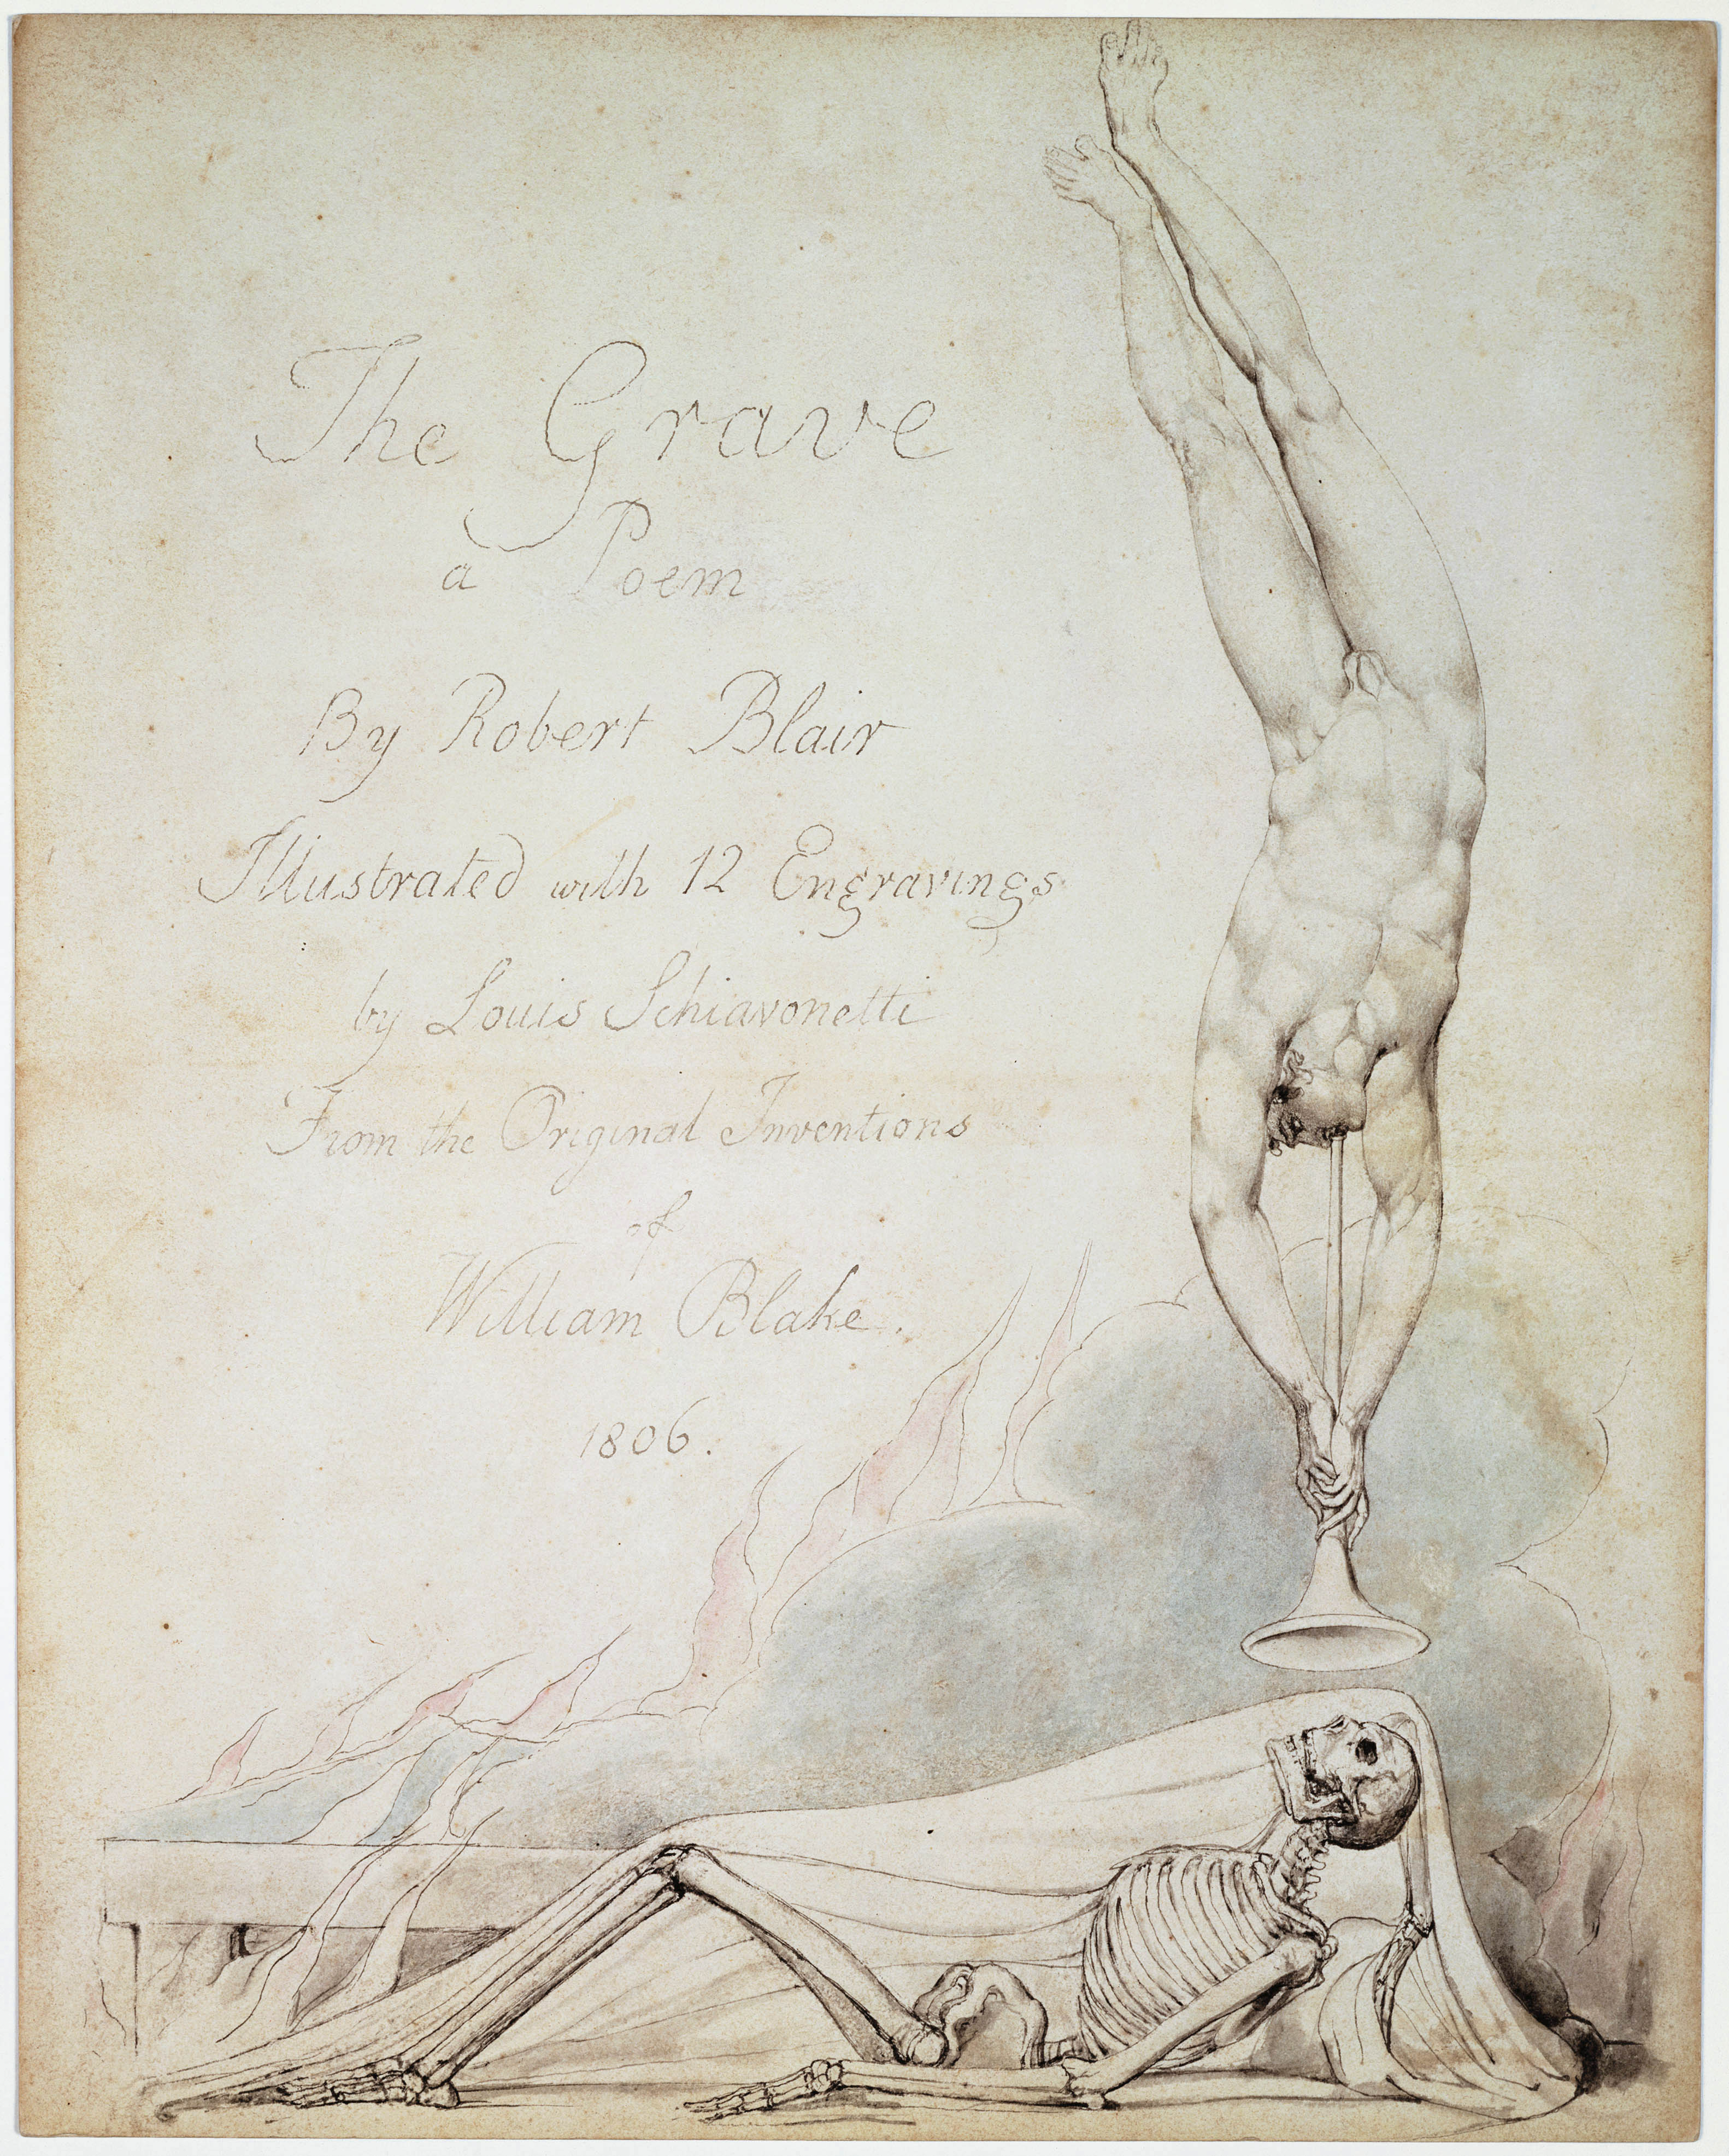 The Grave               a Poem               By Robert Blair               Illustrated with 12 Engravings               by Louis Schiavonetti               From the Original Inventions               of               William Blake               1806.